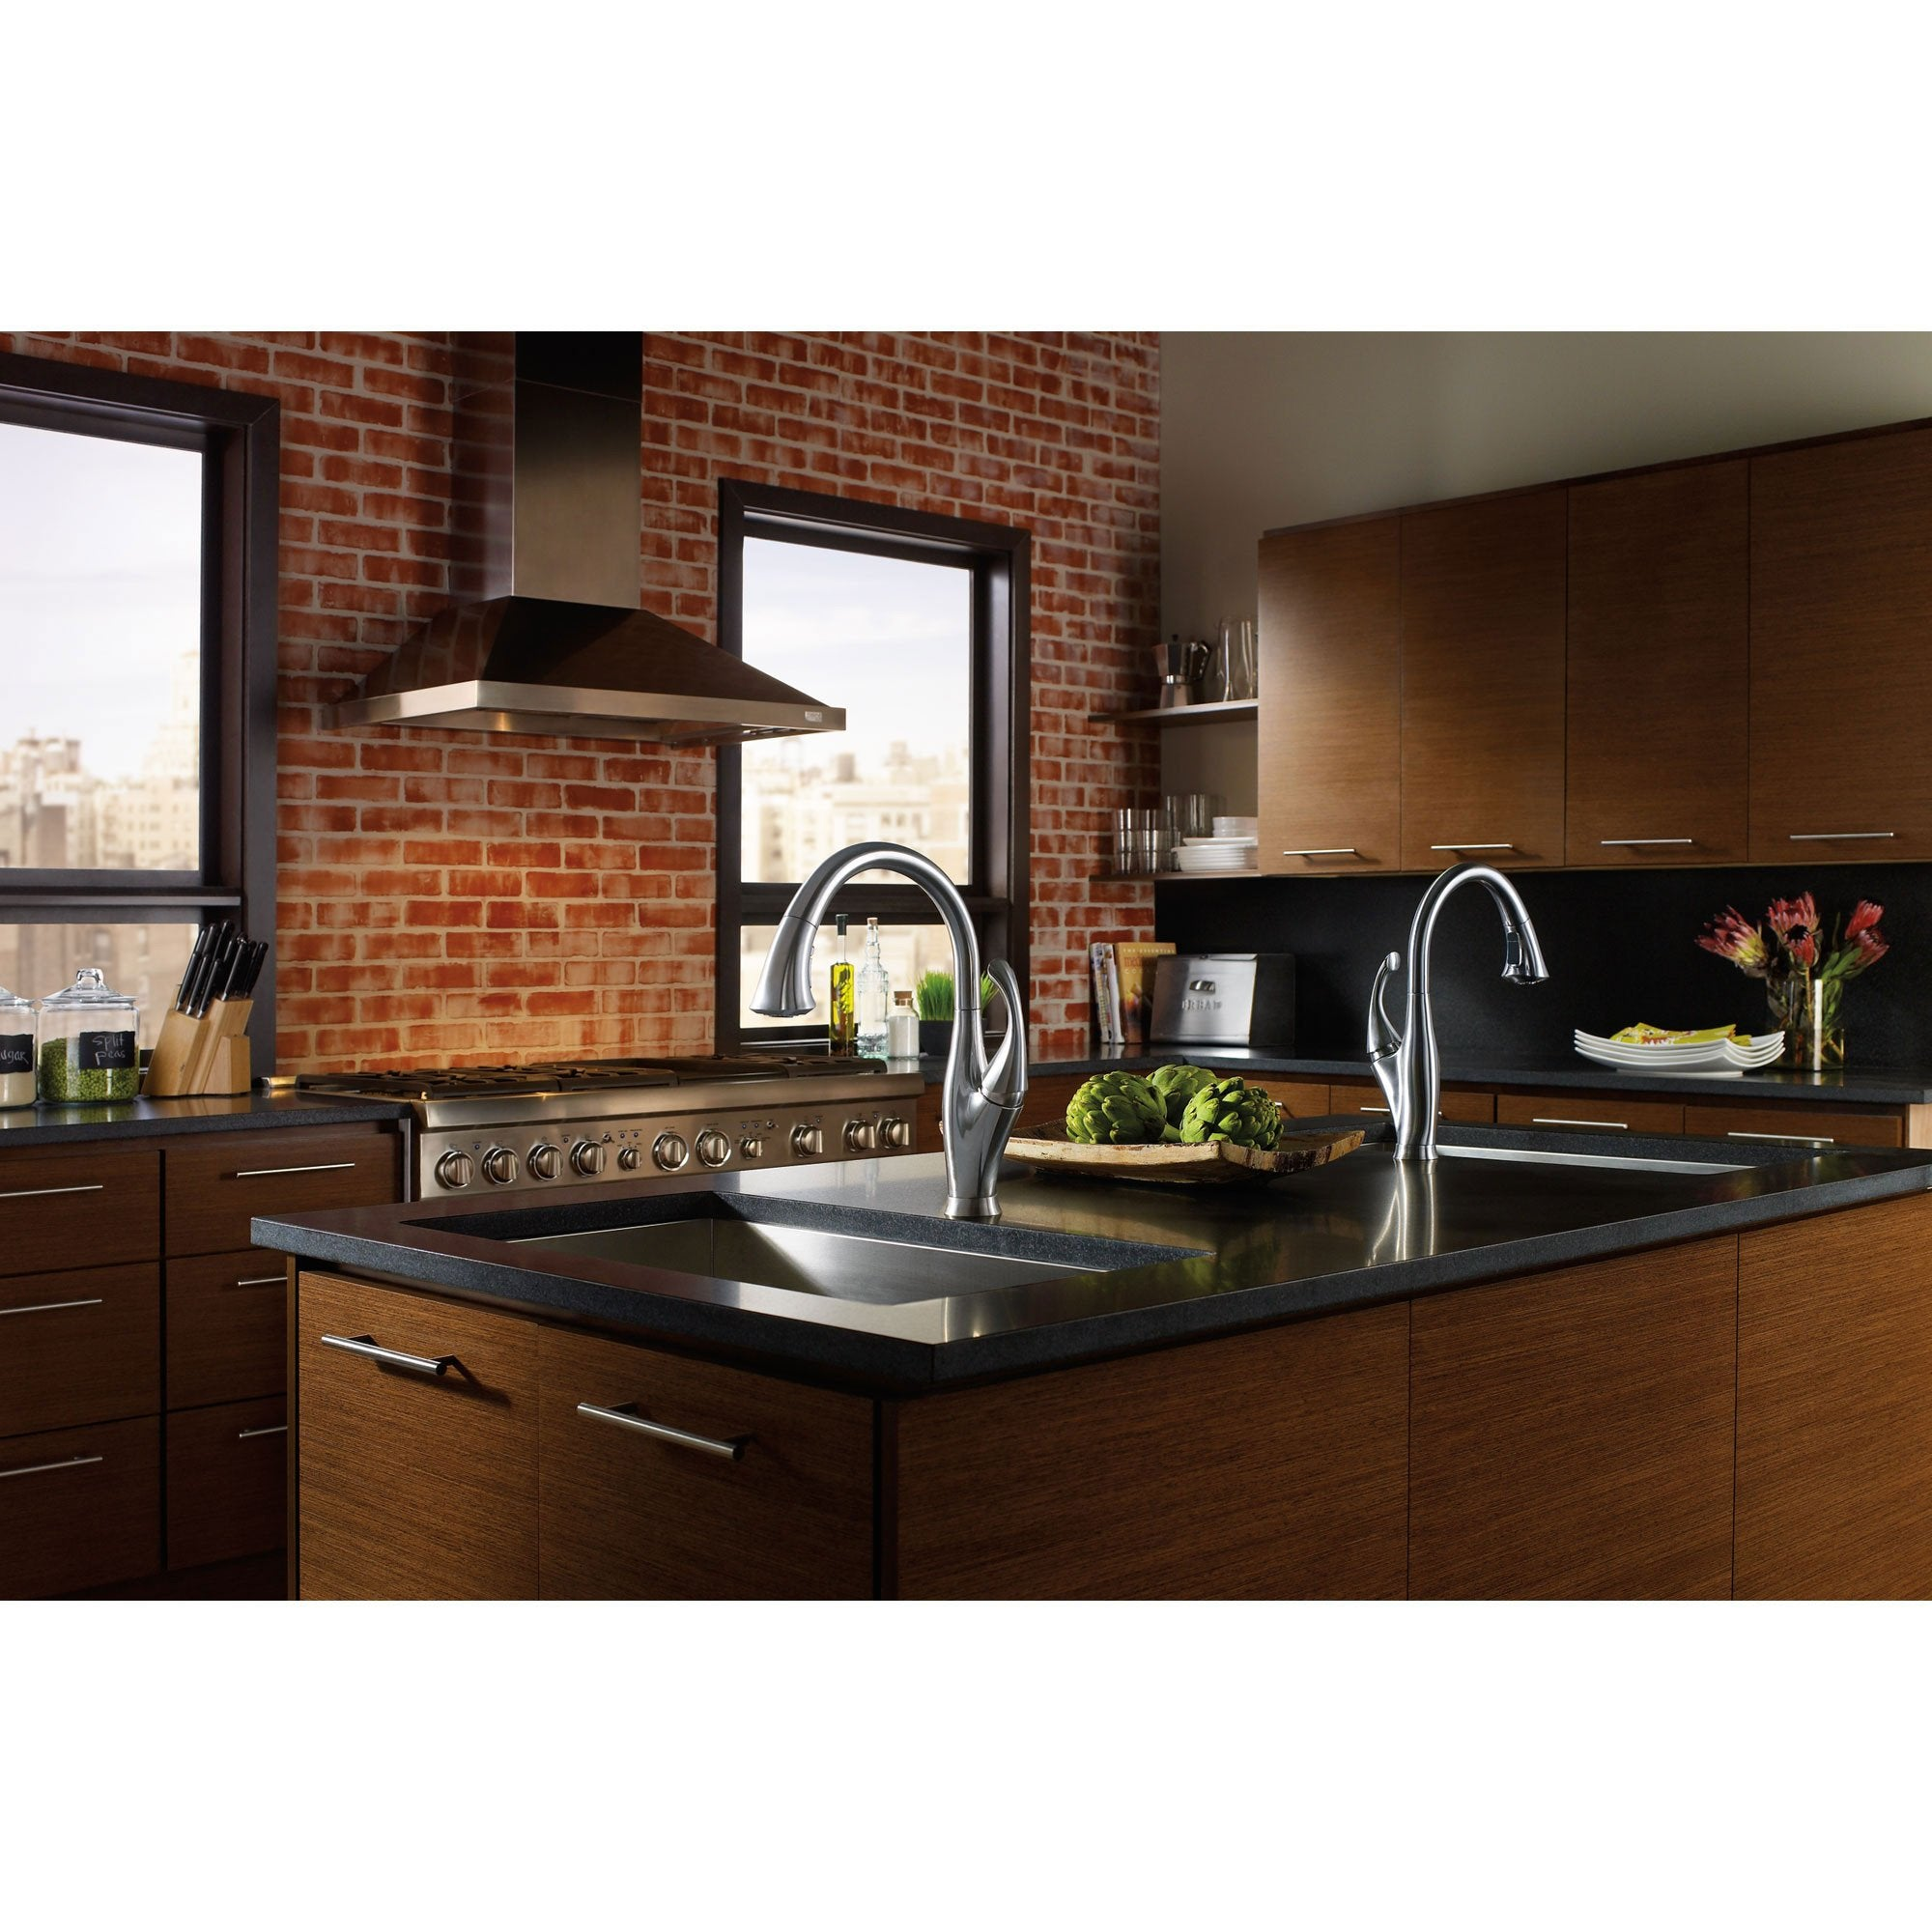 Fine Delta Arctic Stainless Finish Addison Single Handle Water Efficient Pull Down Kitchen Faucet And Pull Out Bar Prep Sink Faucet Package D078Cr Download Free Architecture Designs Embacsunscenecom